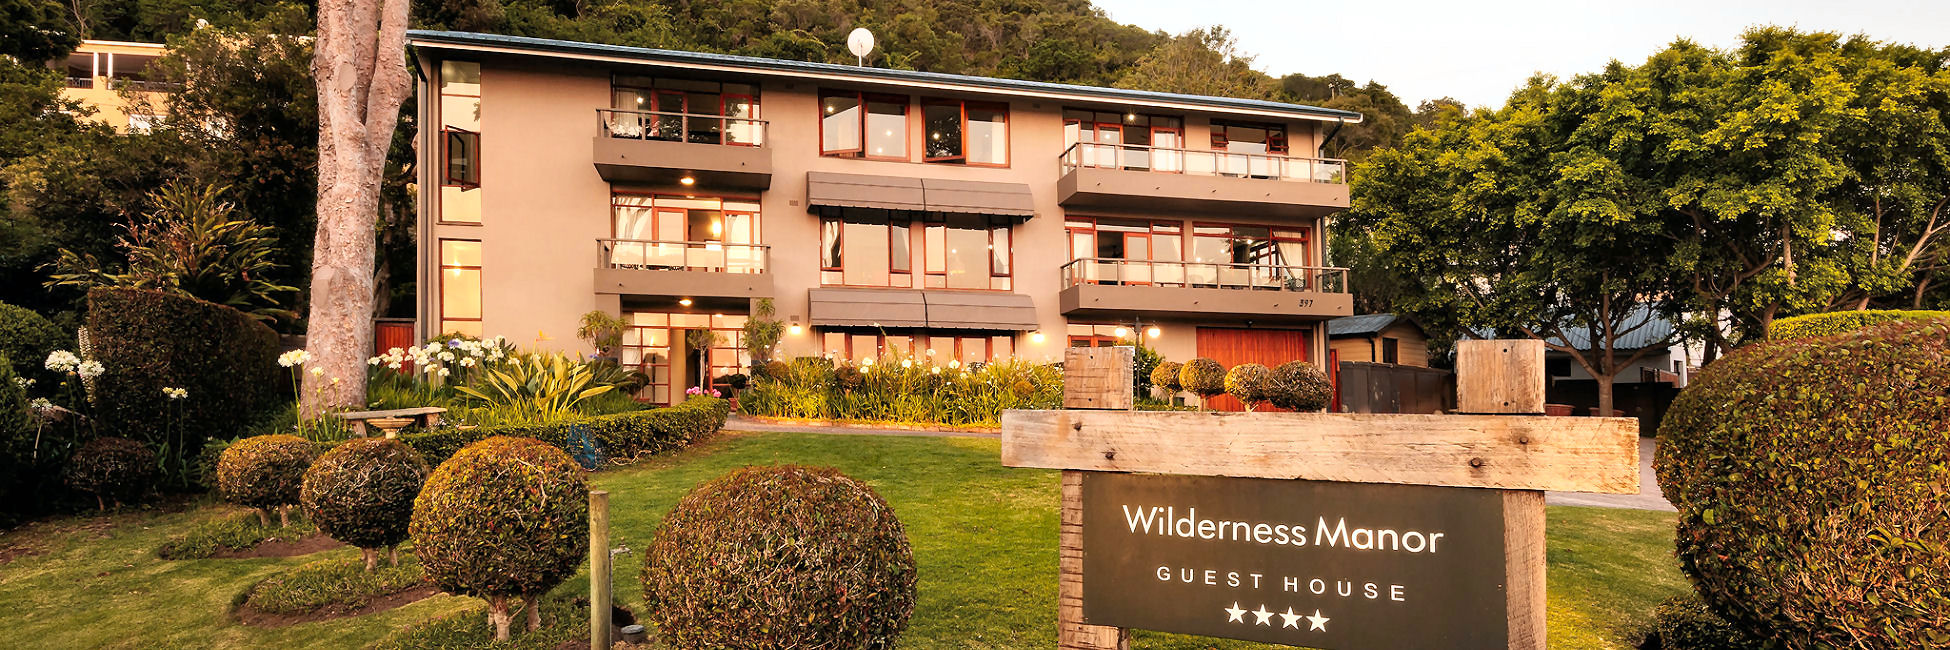 Wilderness Manor Guest House Exterior